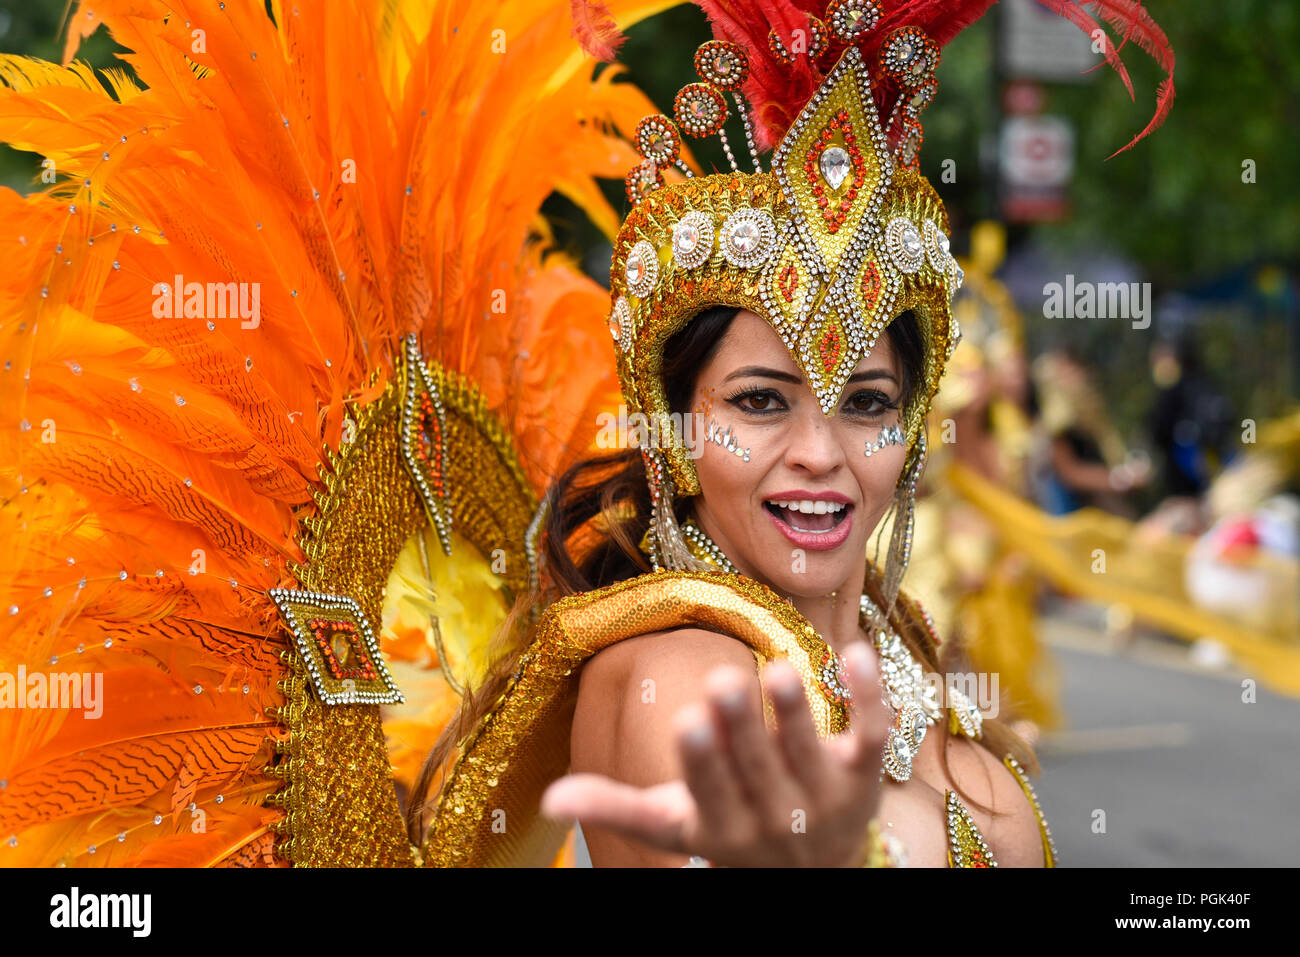 London, UK.  27 August 2018. A performer takes part in The Grand Finale parade at the Notting Hill Carnival.  Over one million revellers are expected to visit Europe's biggest street party over the Bank Holiday Weekend in a popular annual event celebrating Caribbean culture. Credit: Stephen Chung / Alamy Live News - Stock Image